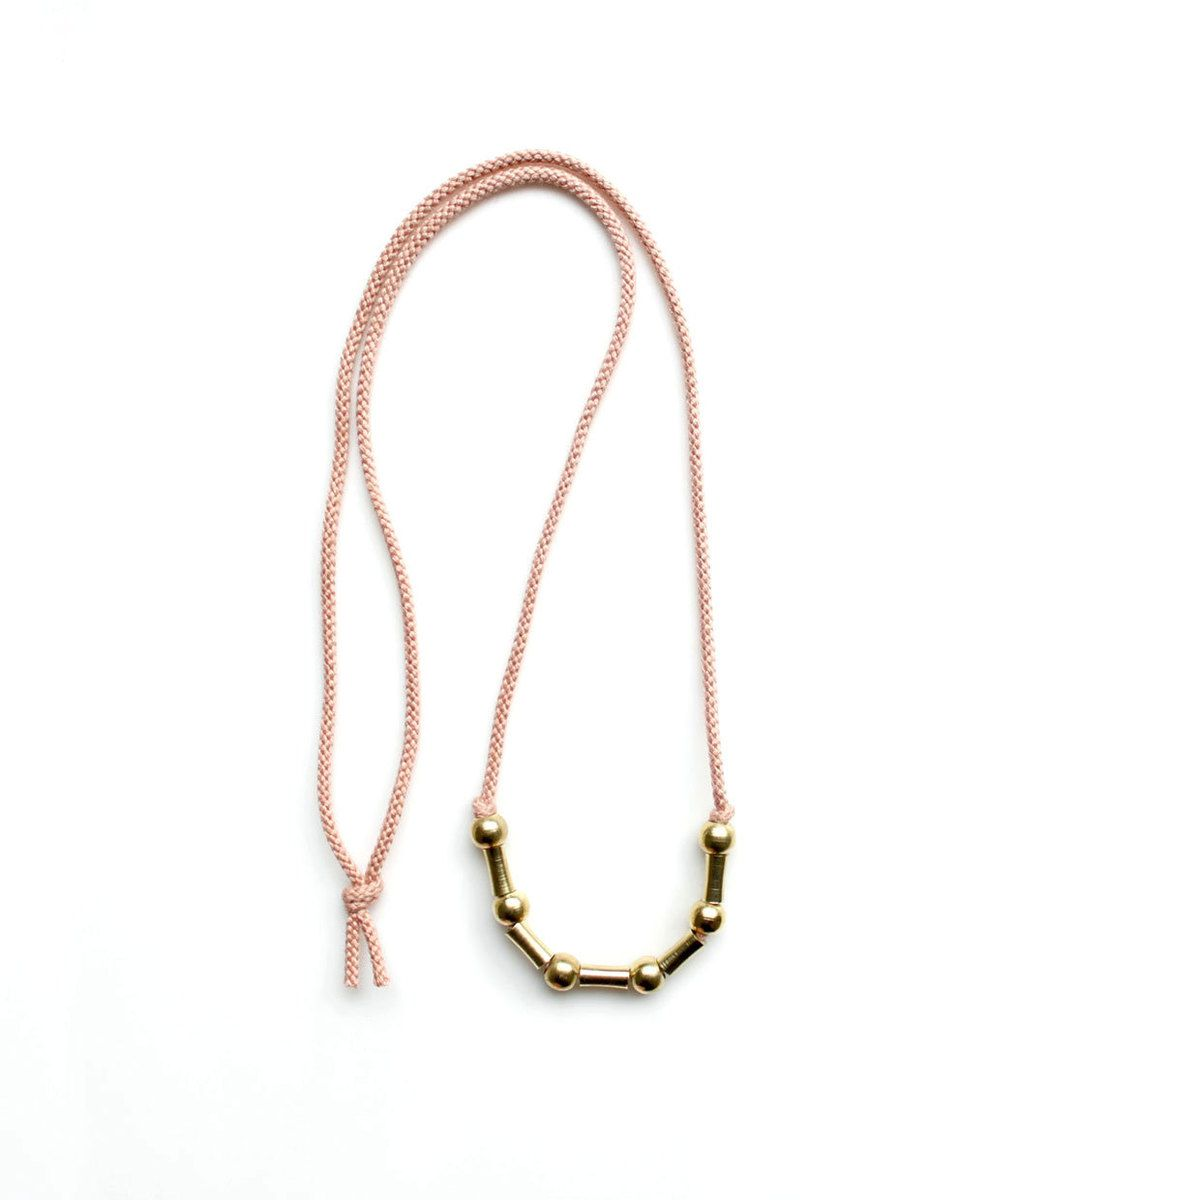 leather necklace gad regalia products image braided feather rope product